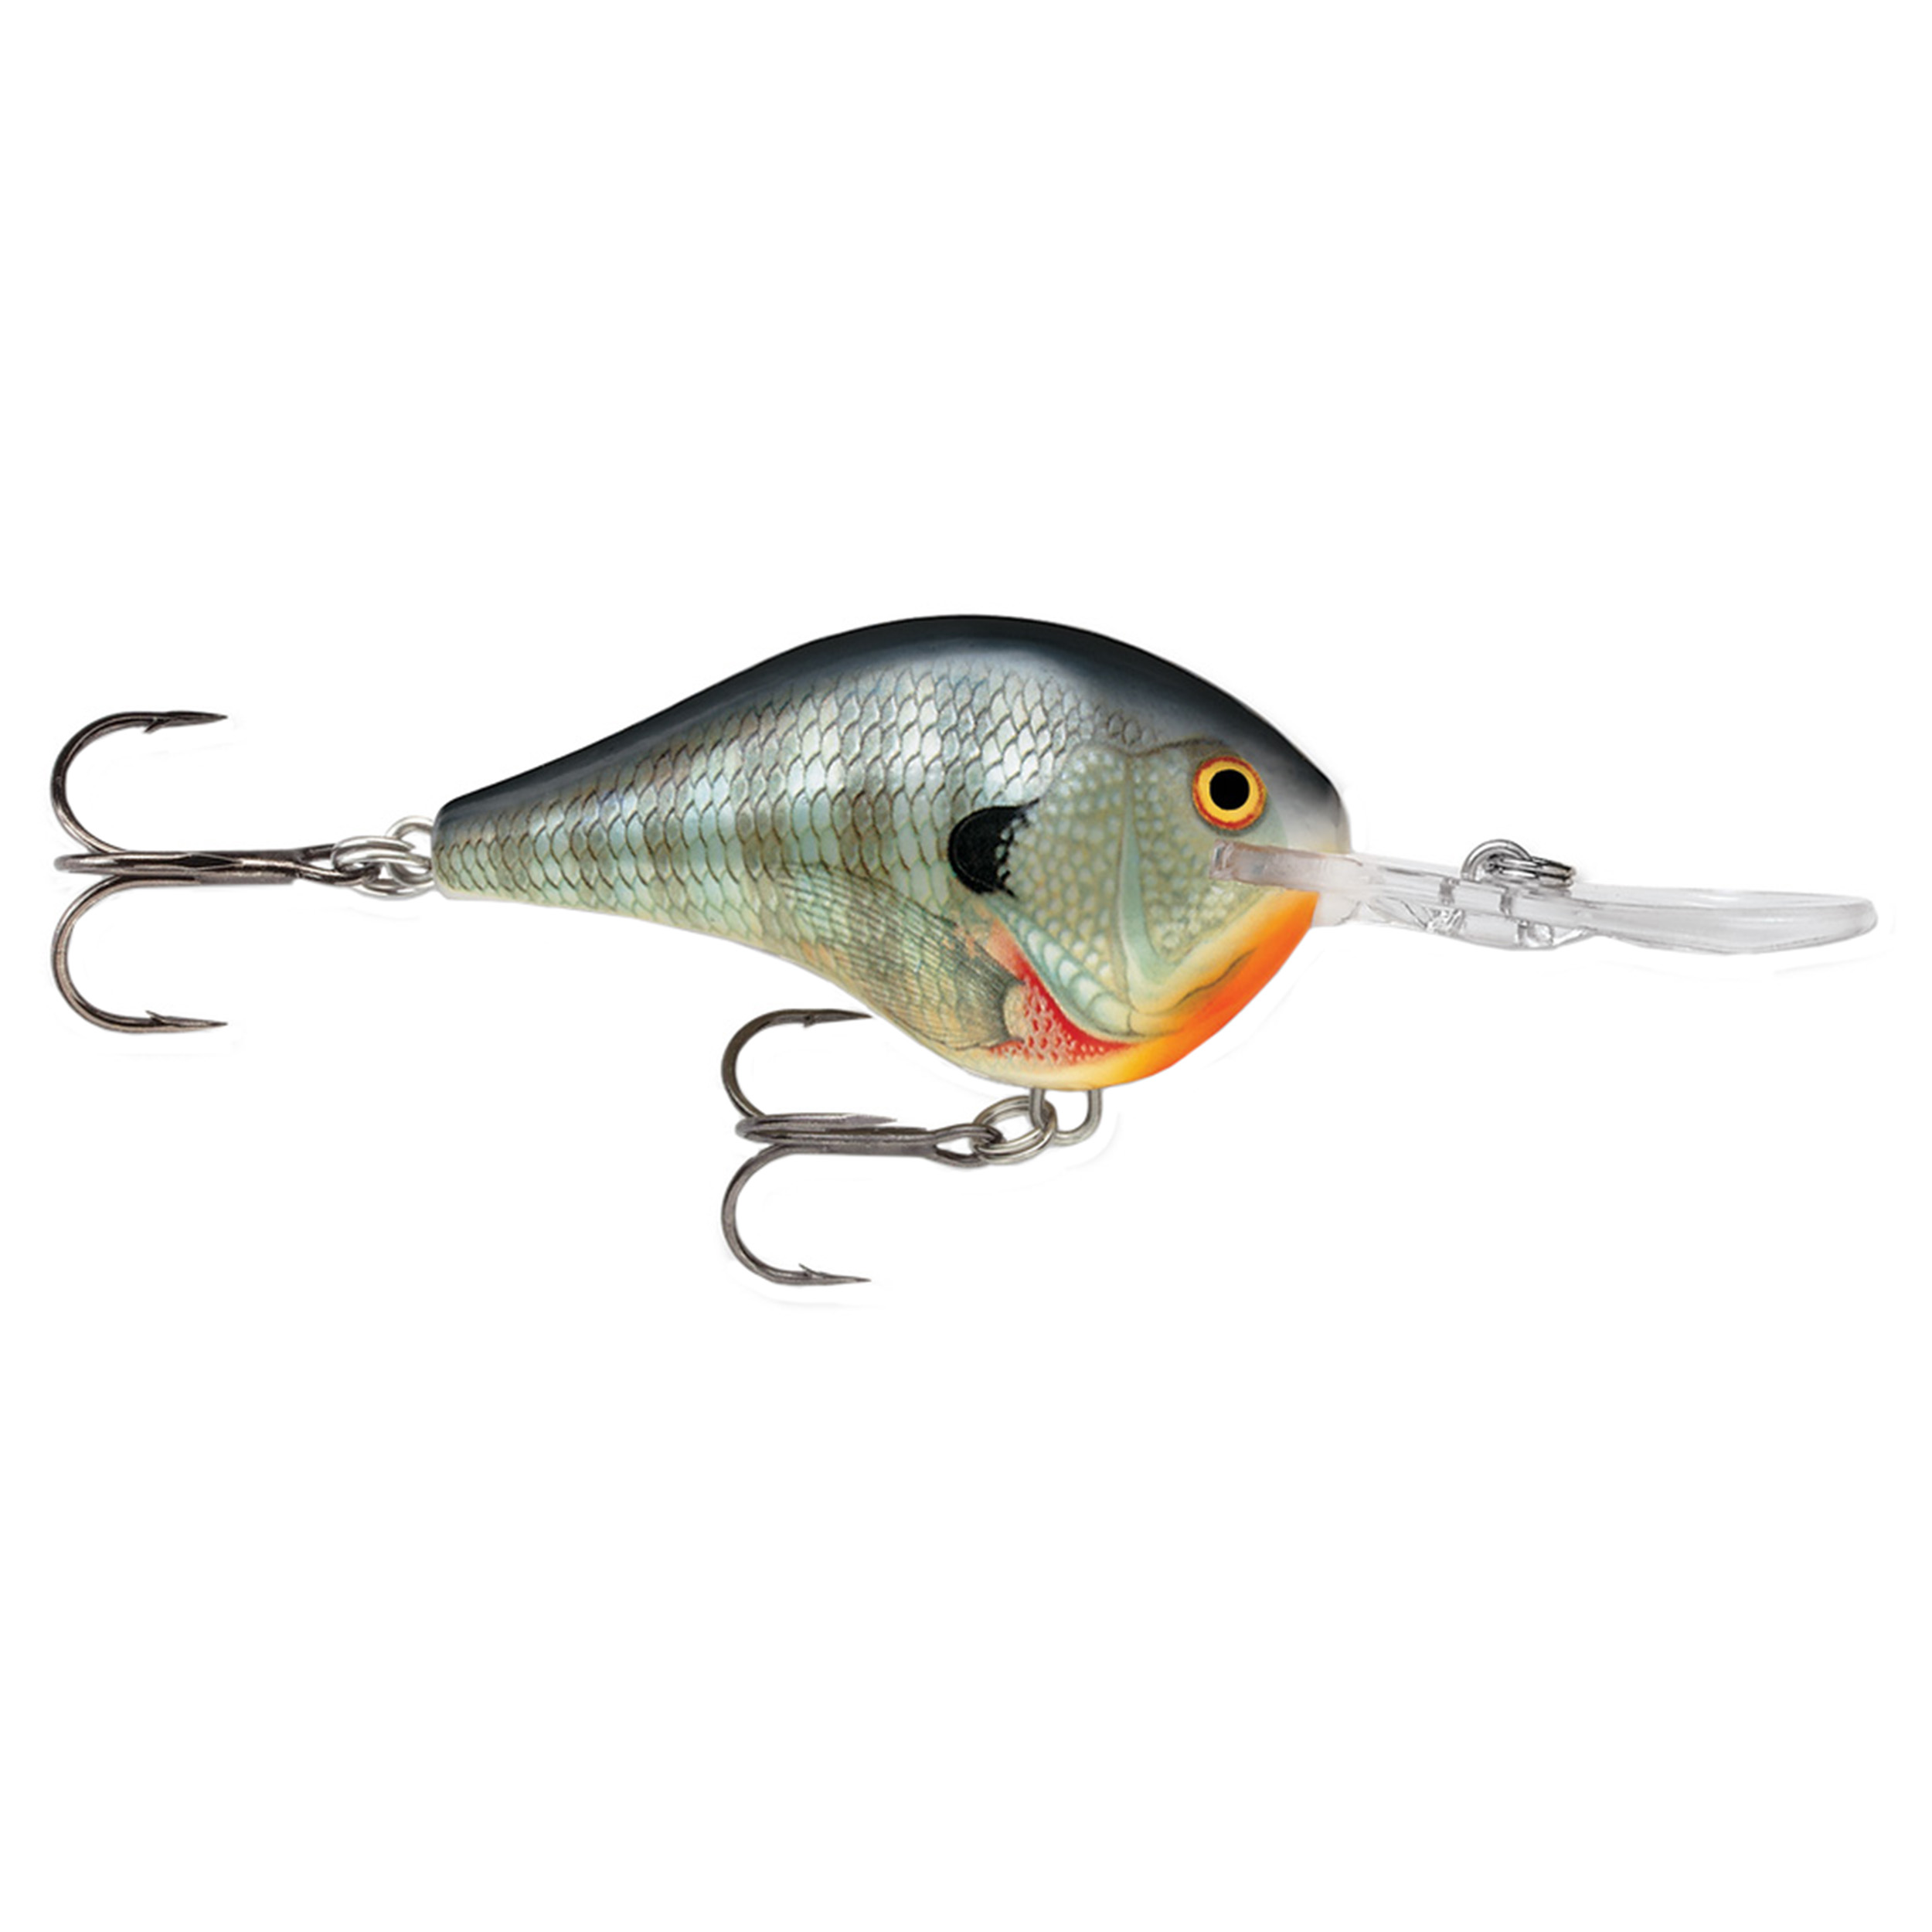 "Rapala Dives-To Series Custom Ink Lure Size 04, 2"" Length, 4' Depth, 2 Number 6 Treble Hooks, Bluegill, Per 1 by Rapala"